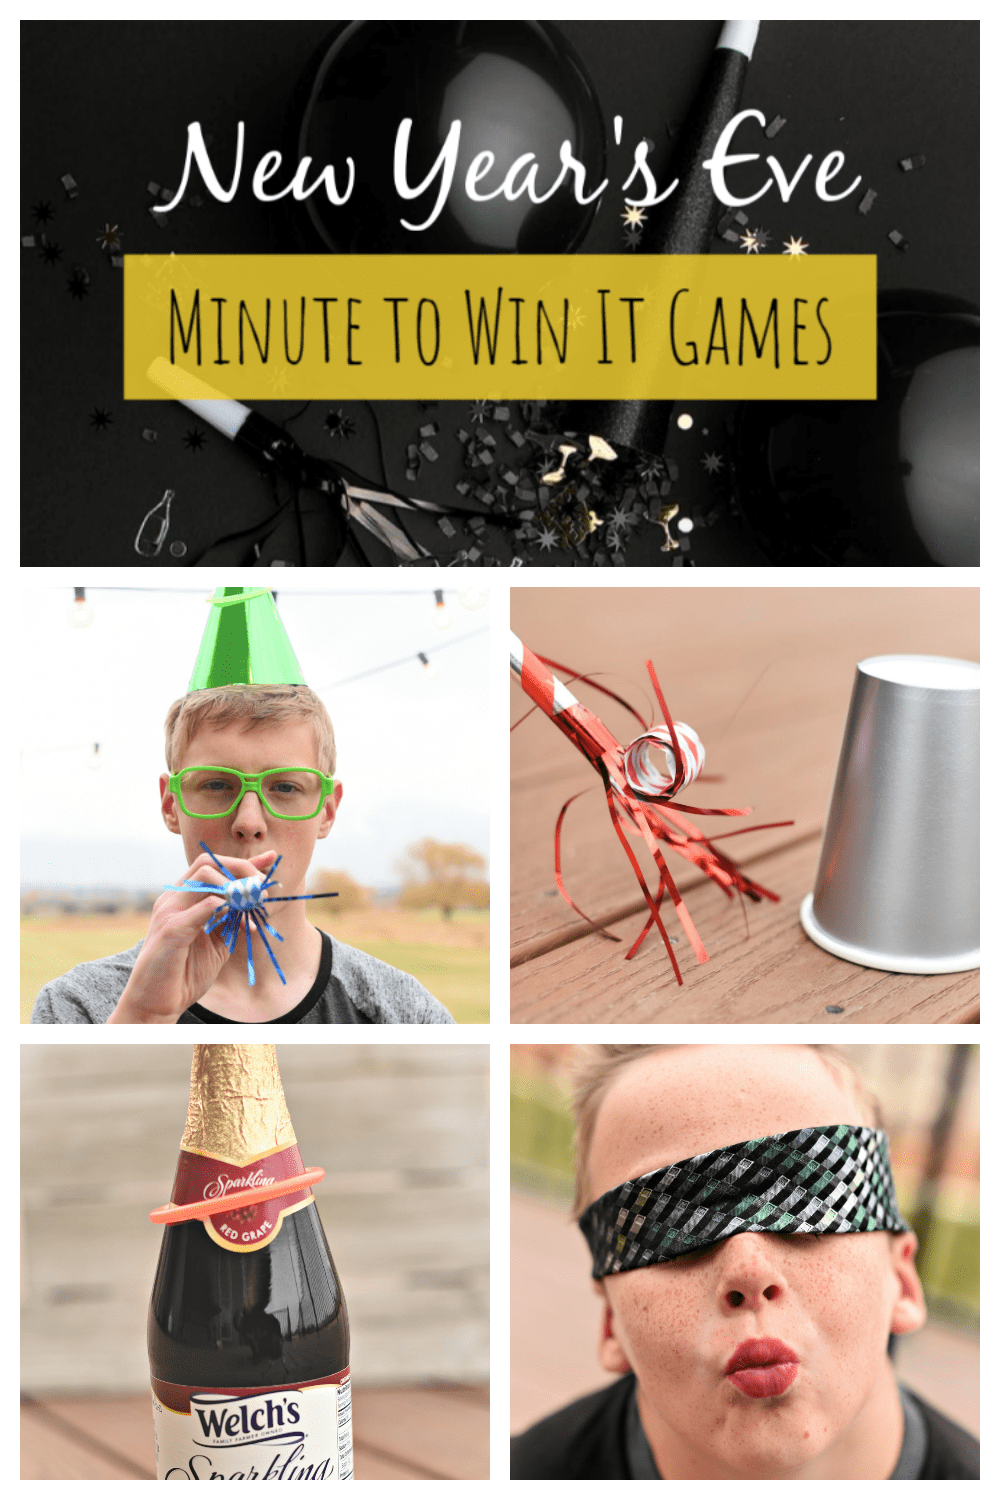 Fun New Year's Eve Minute to Win It Games | Minute to win ...